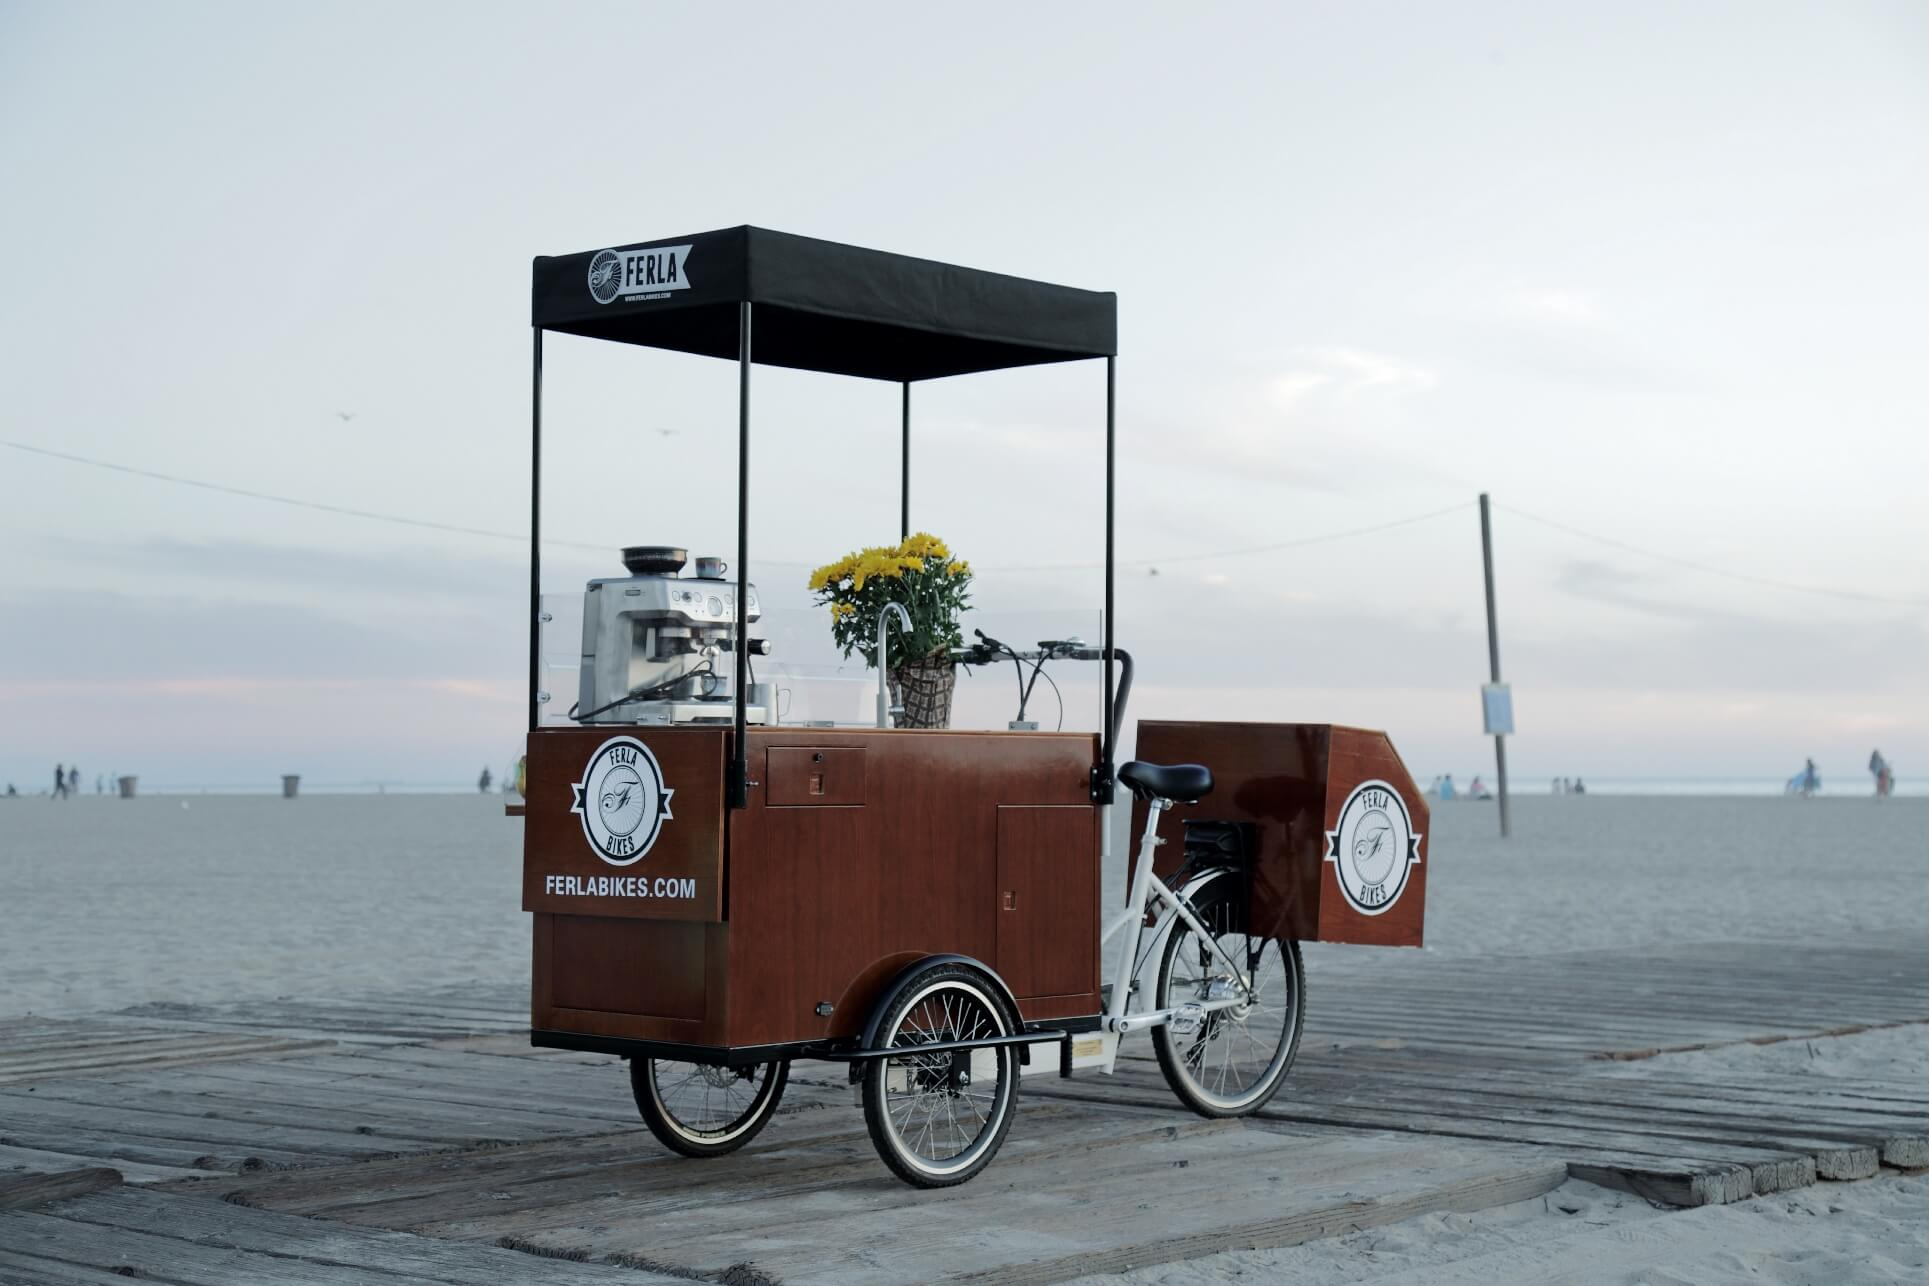 ferla 2 coffee bike